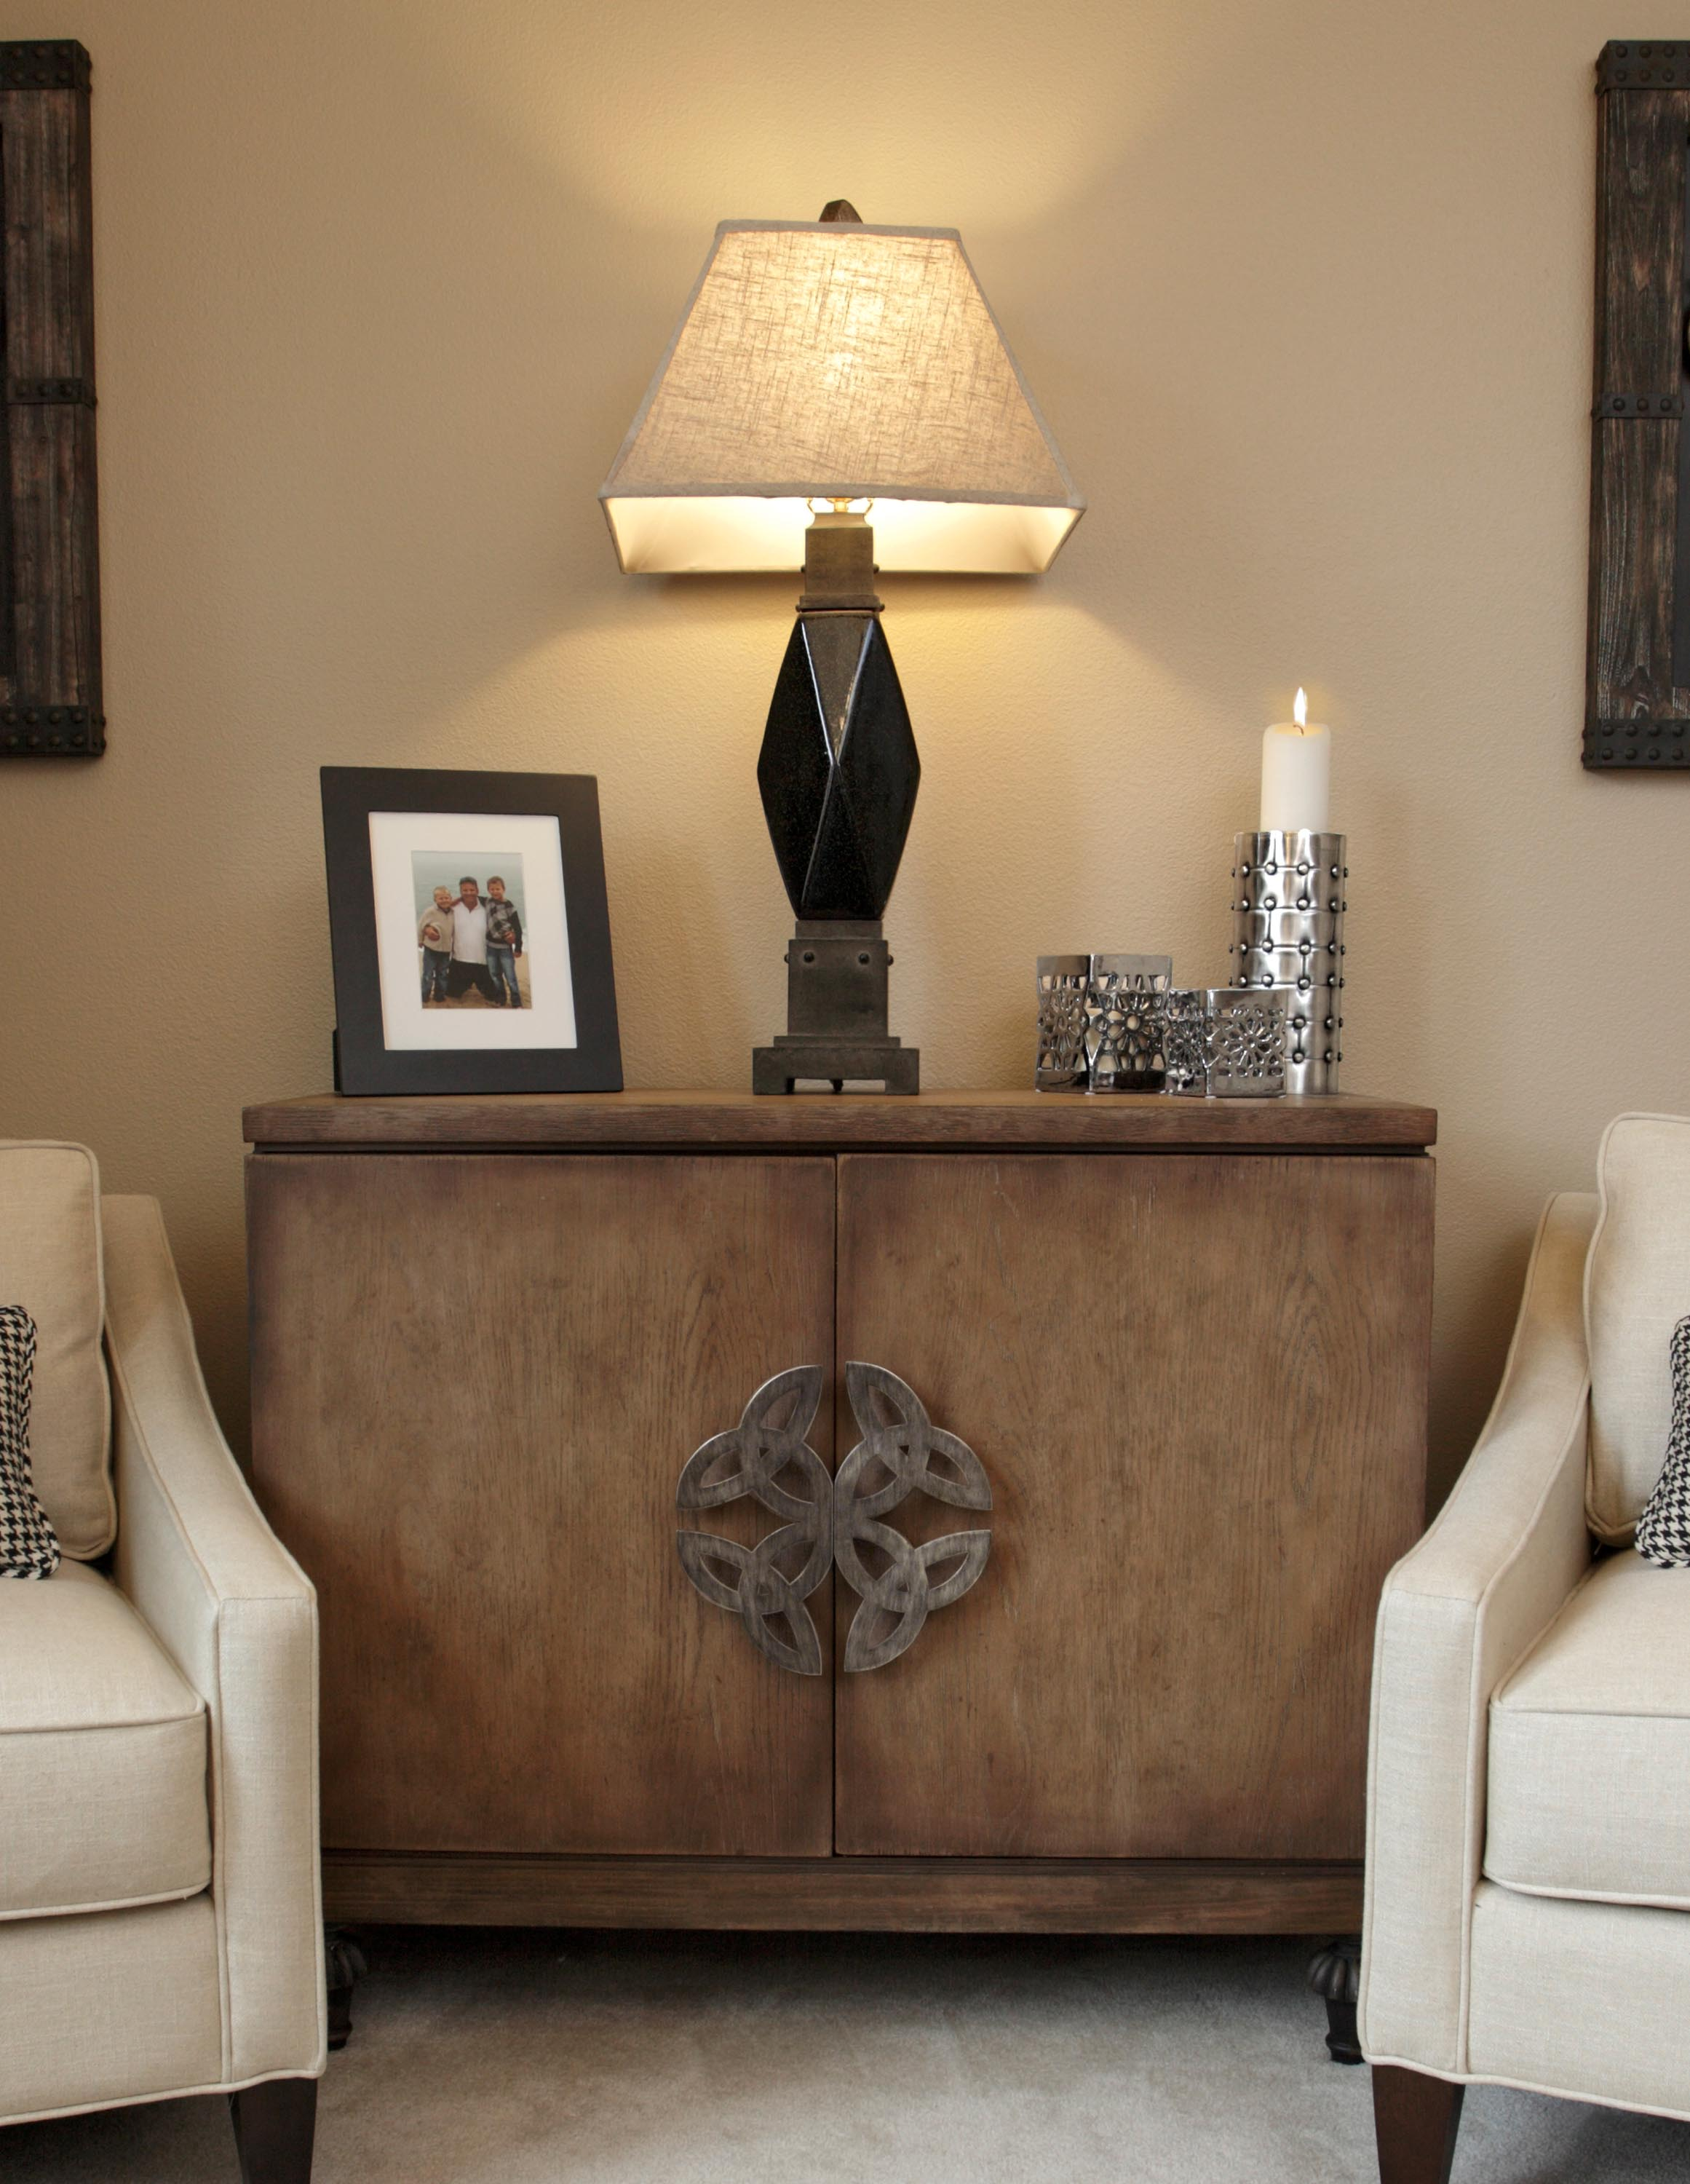 Elegant picture frame, lamp and candle above the cabinet